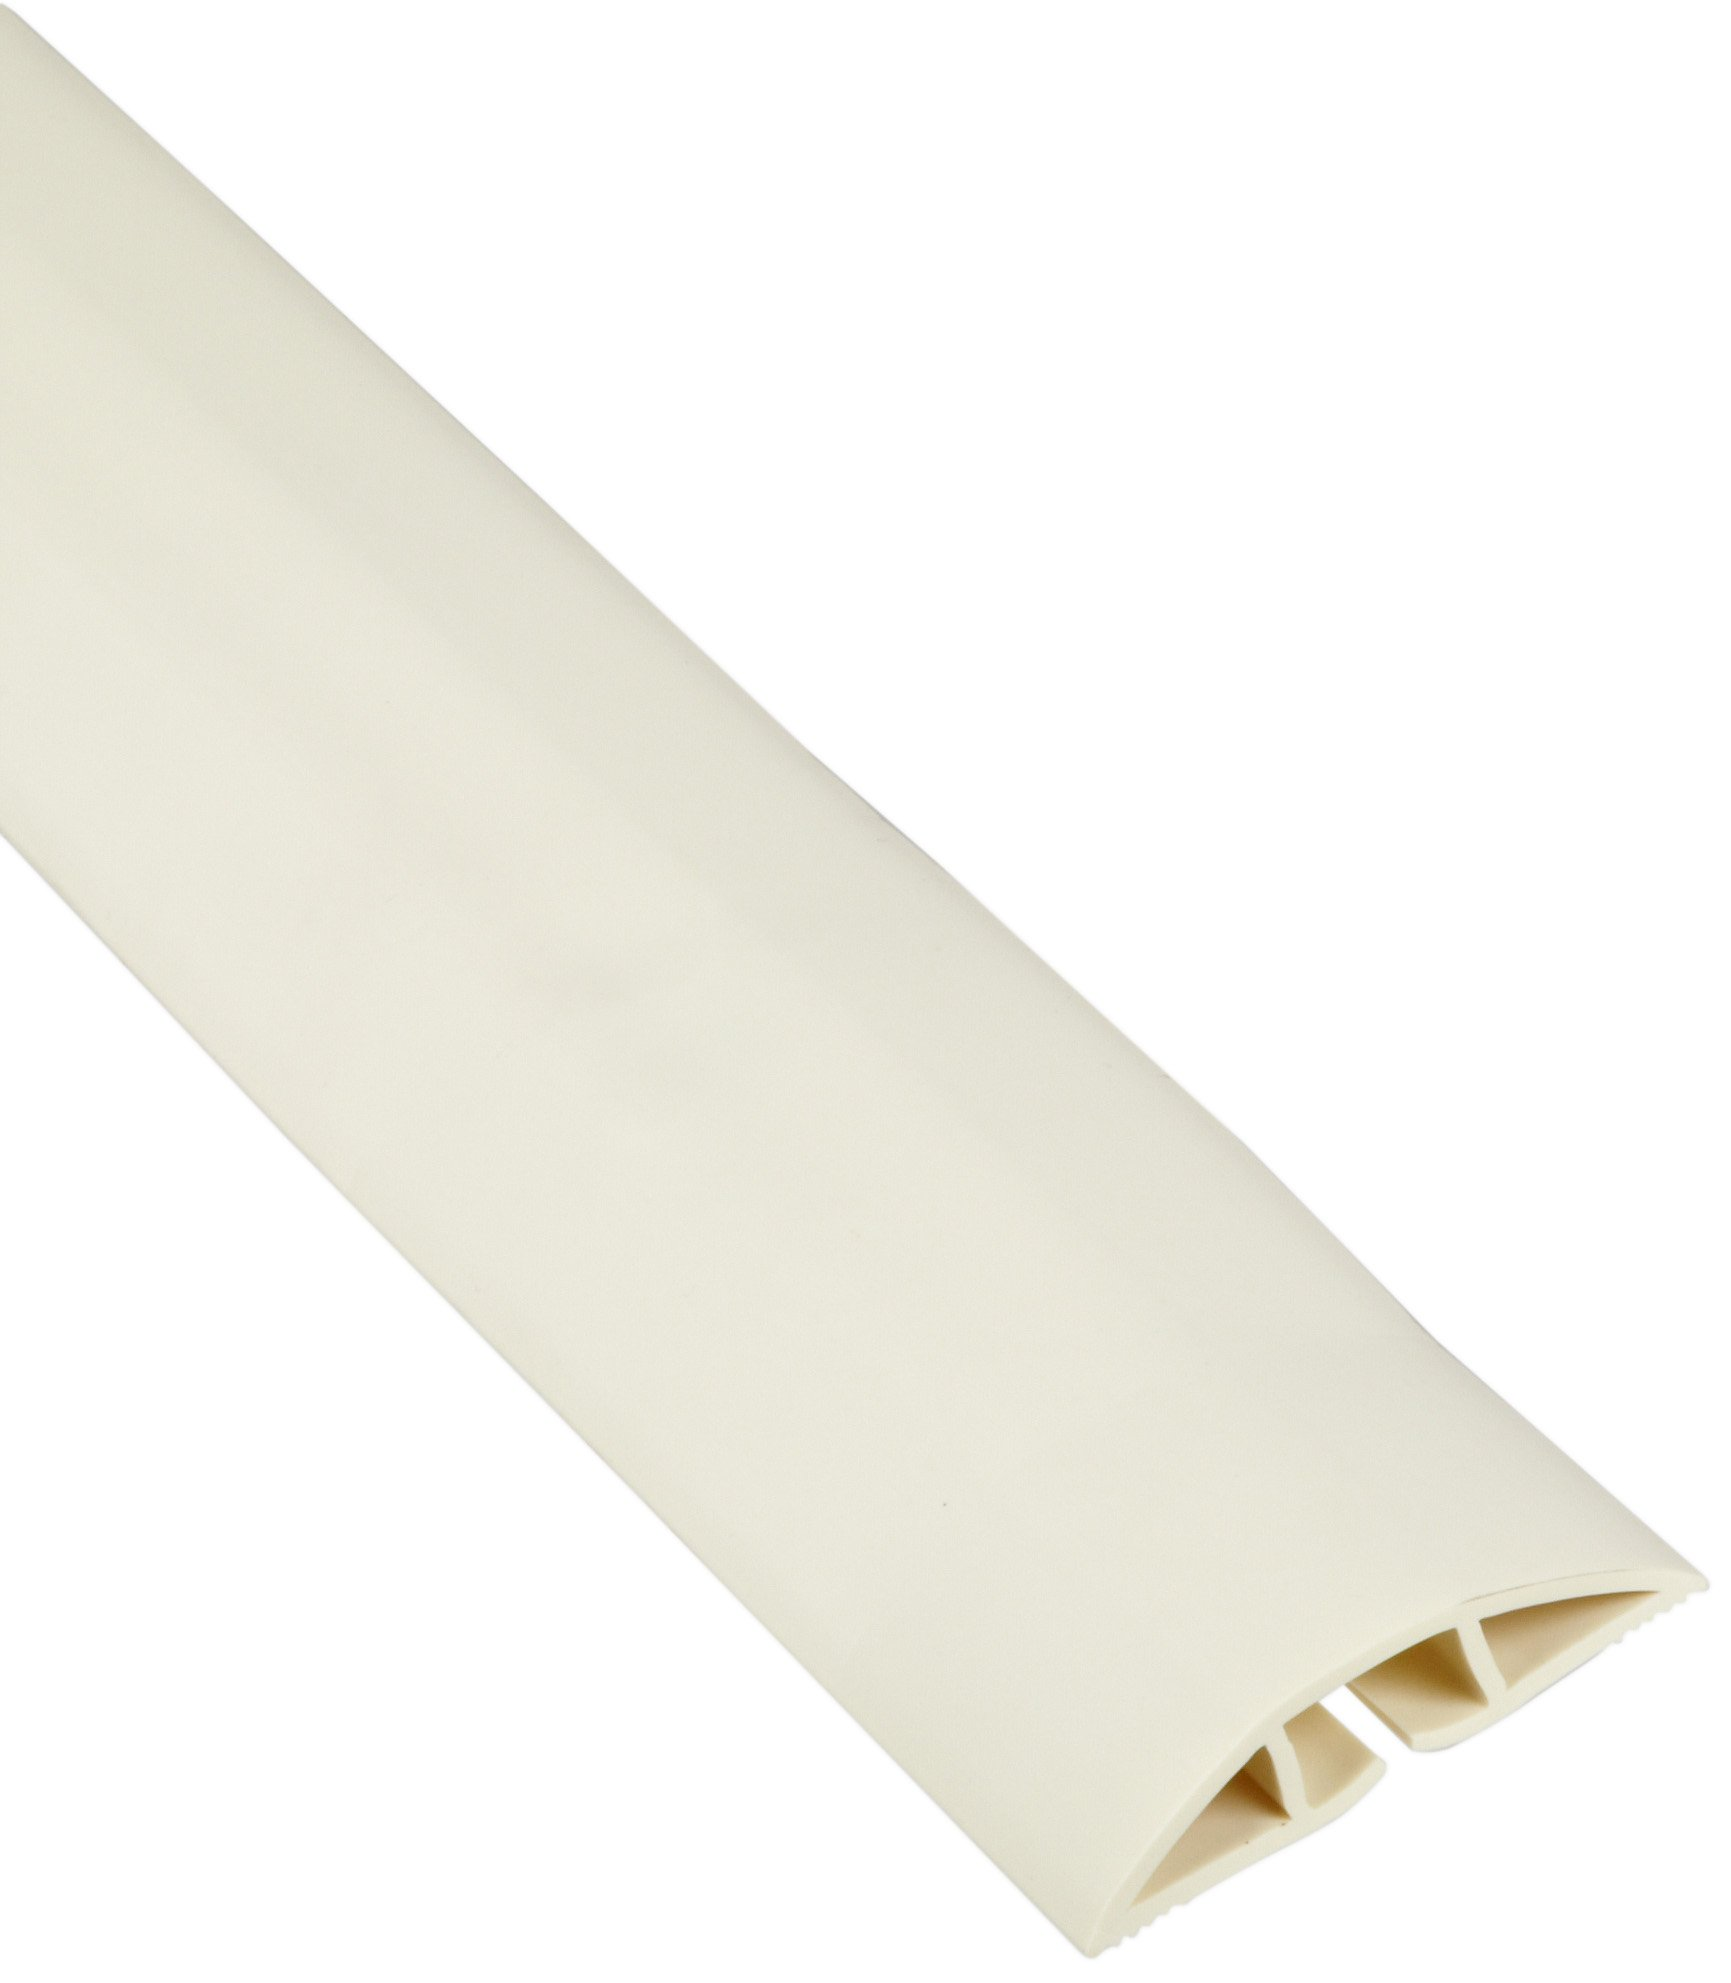 Morris Products 22616 Soft Wiring Duct, Off White, 0.75'' ID, 2-1/2'' OD, 0.60'' Width, 0.43'' Height by Morris Products (Image #1)